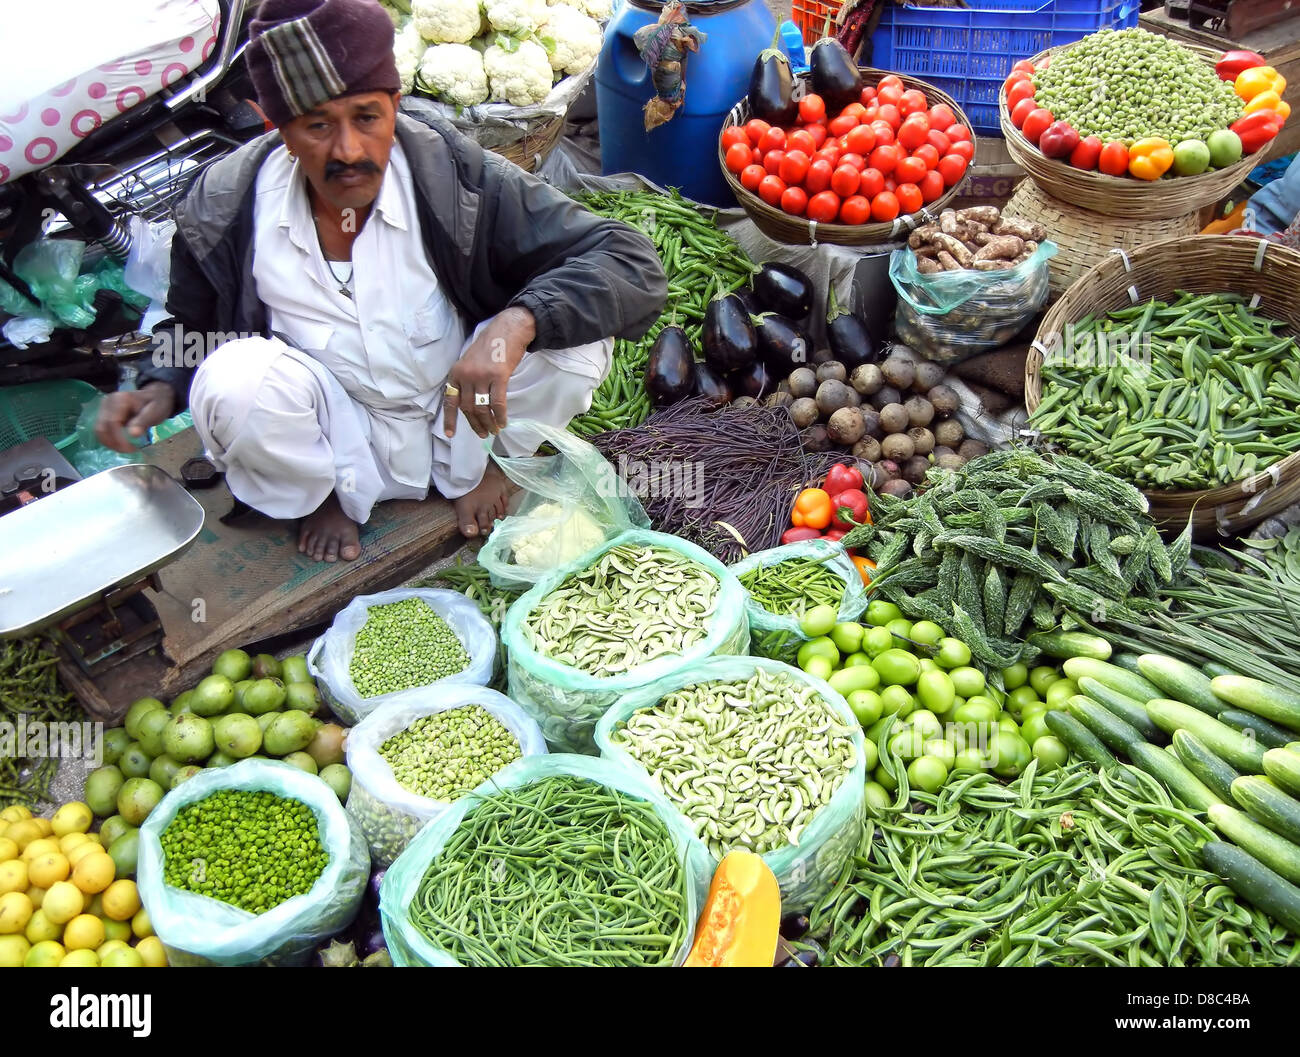 Indian street vendor selling selling fresh vegetables and fruits in farmer's market , Ahmedabad, India - Stock Image